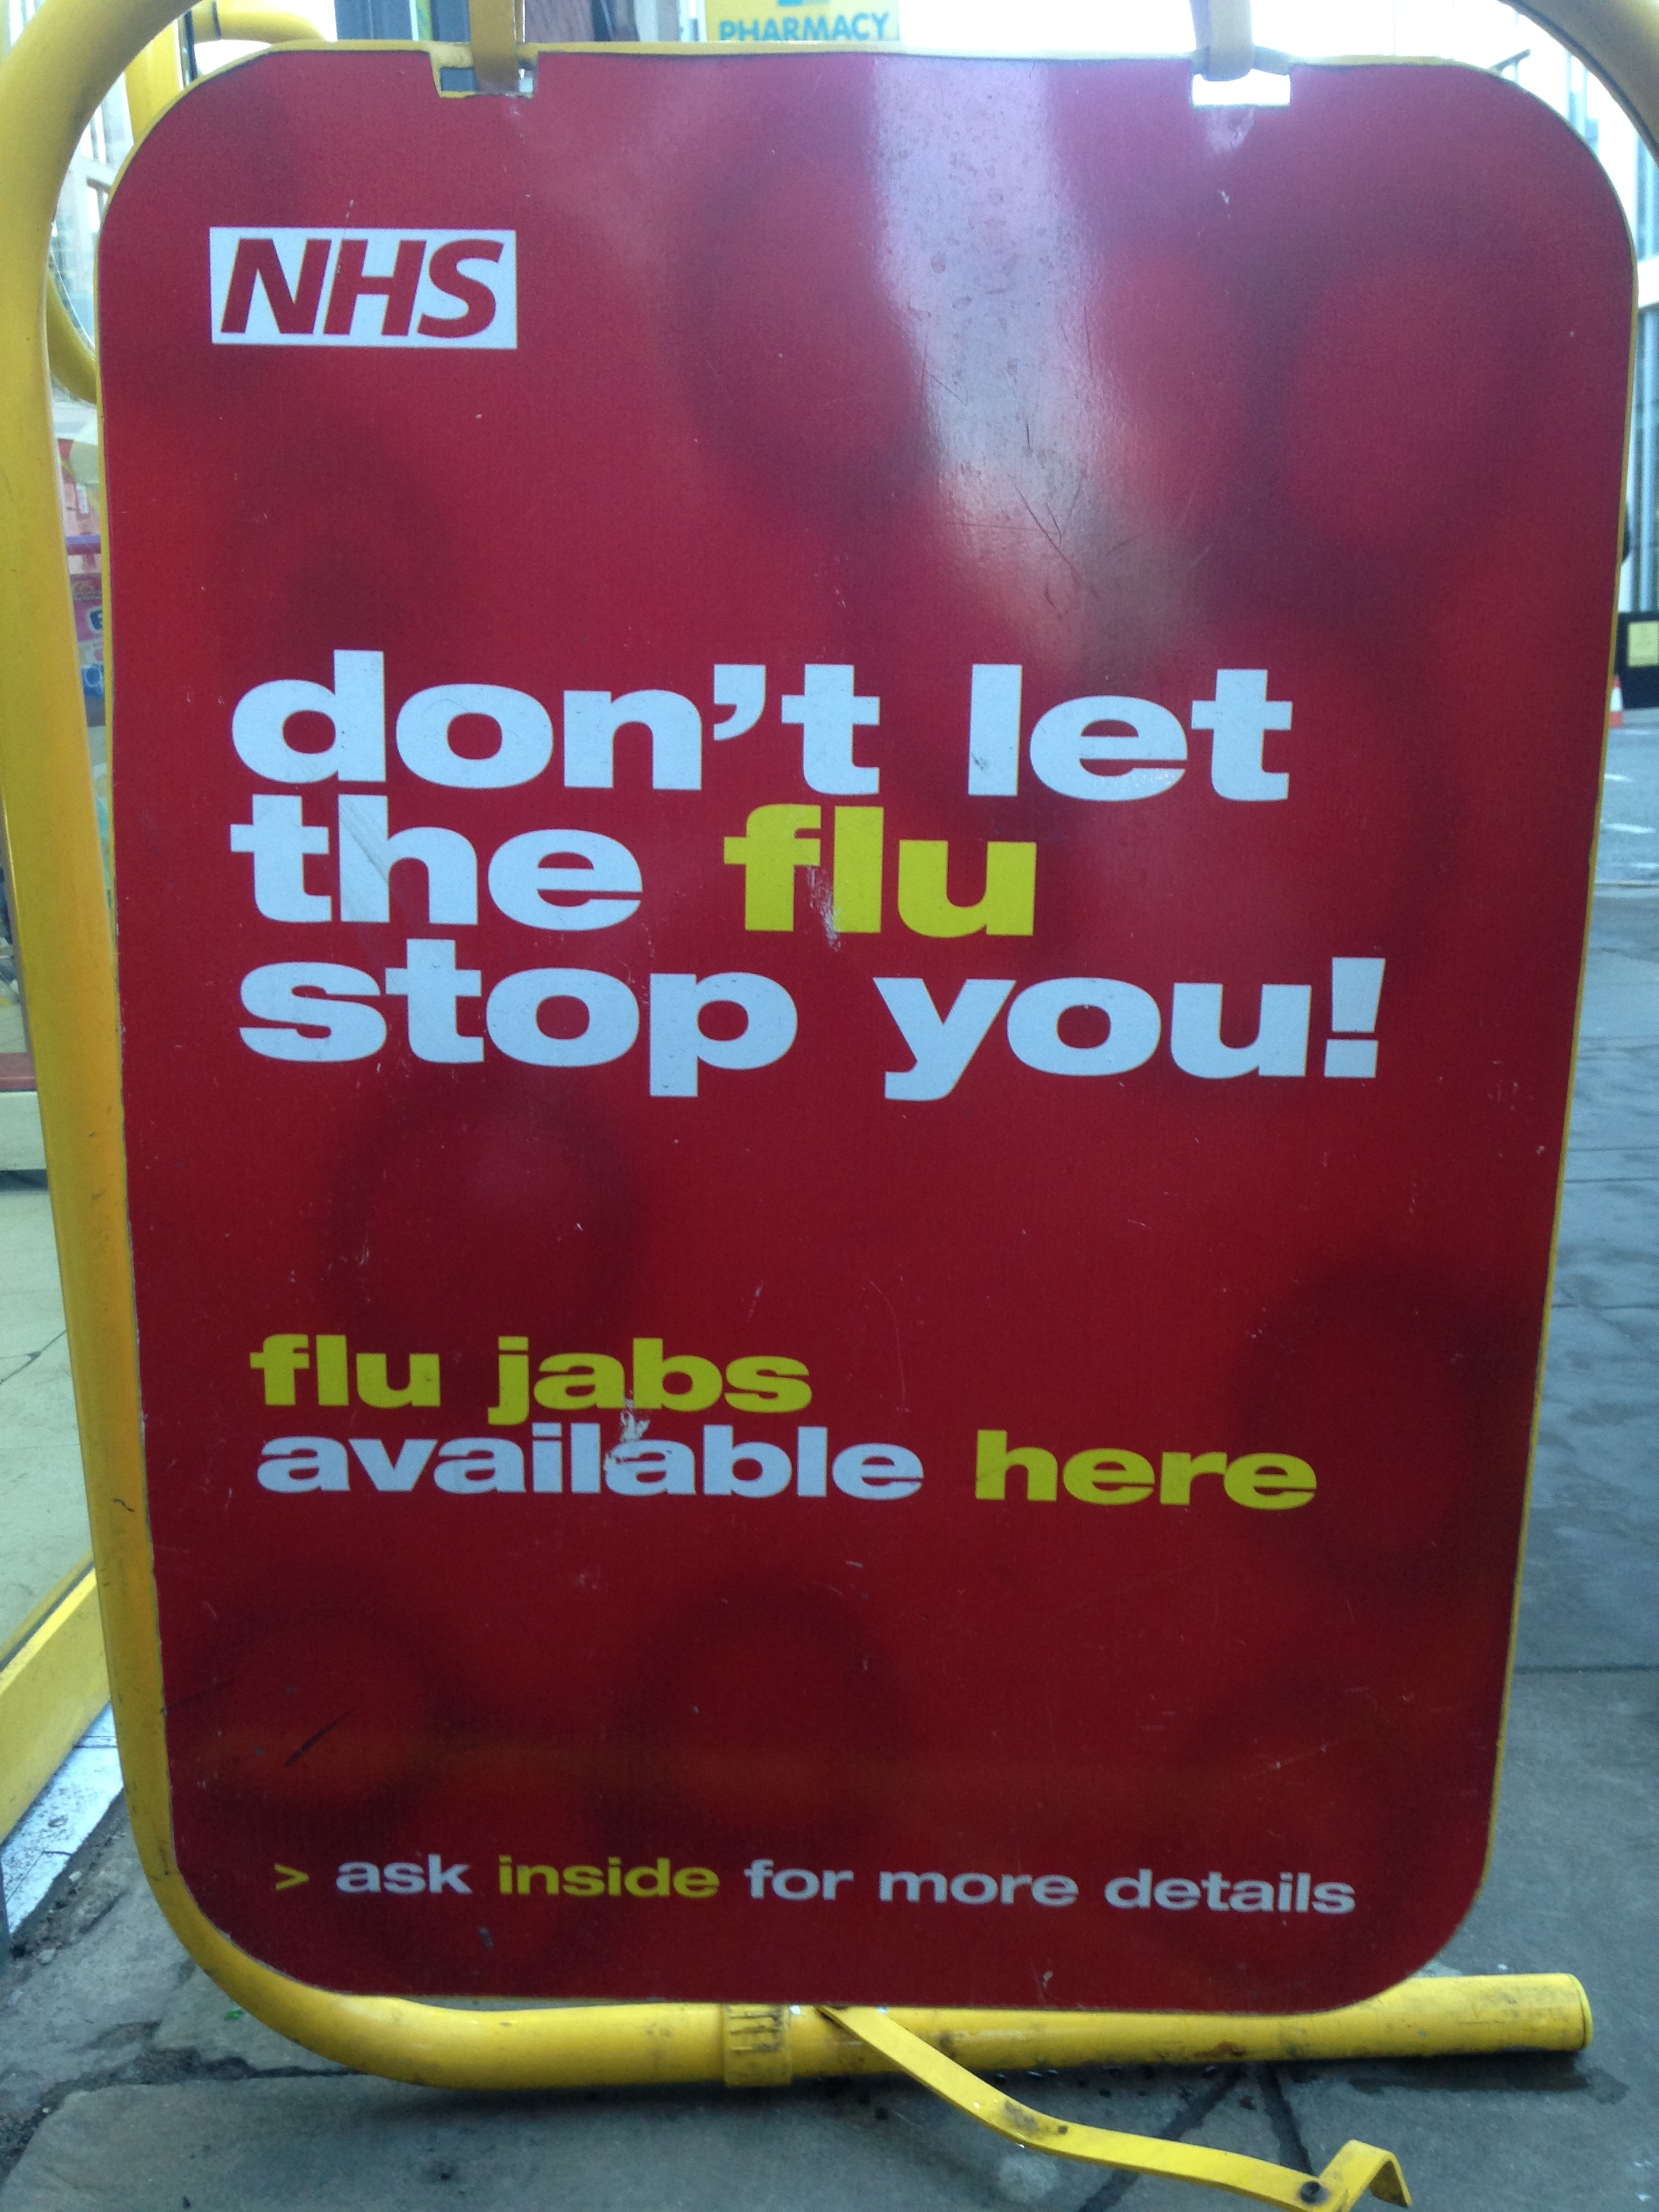 FLU JABS. I couldn't stop laughing. Also, does it strike any other Americans how much this font looks like the one CVS uses?